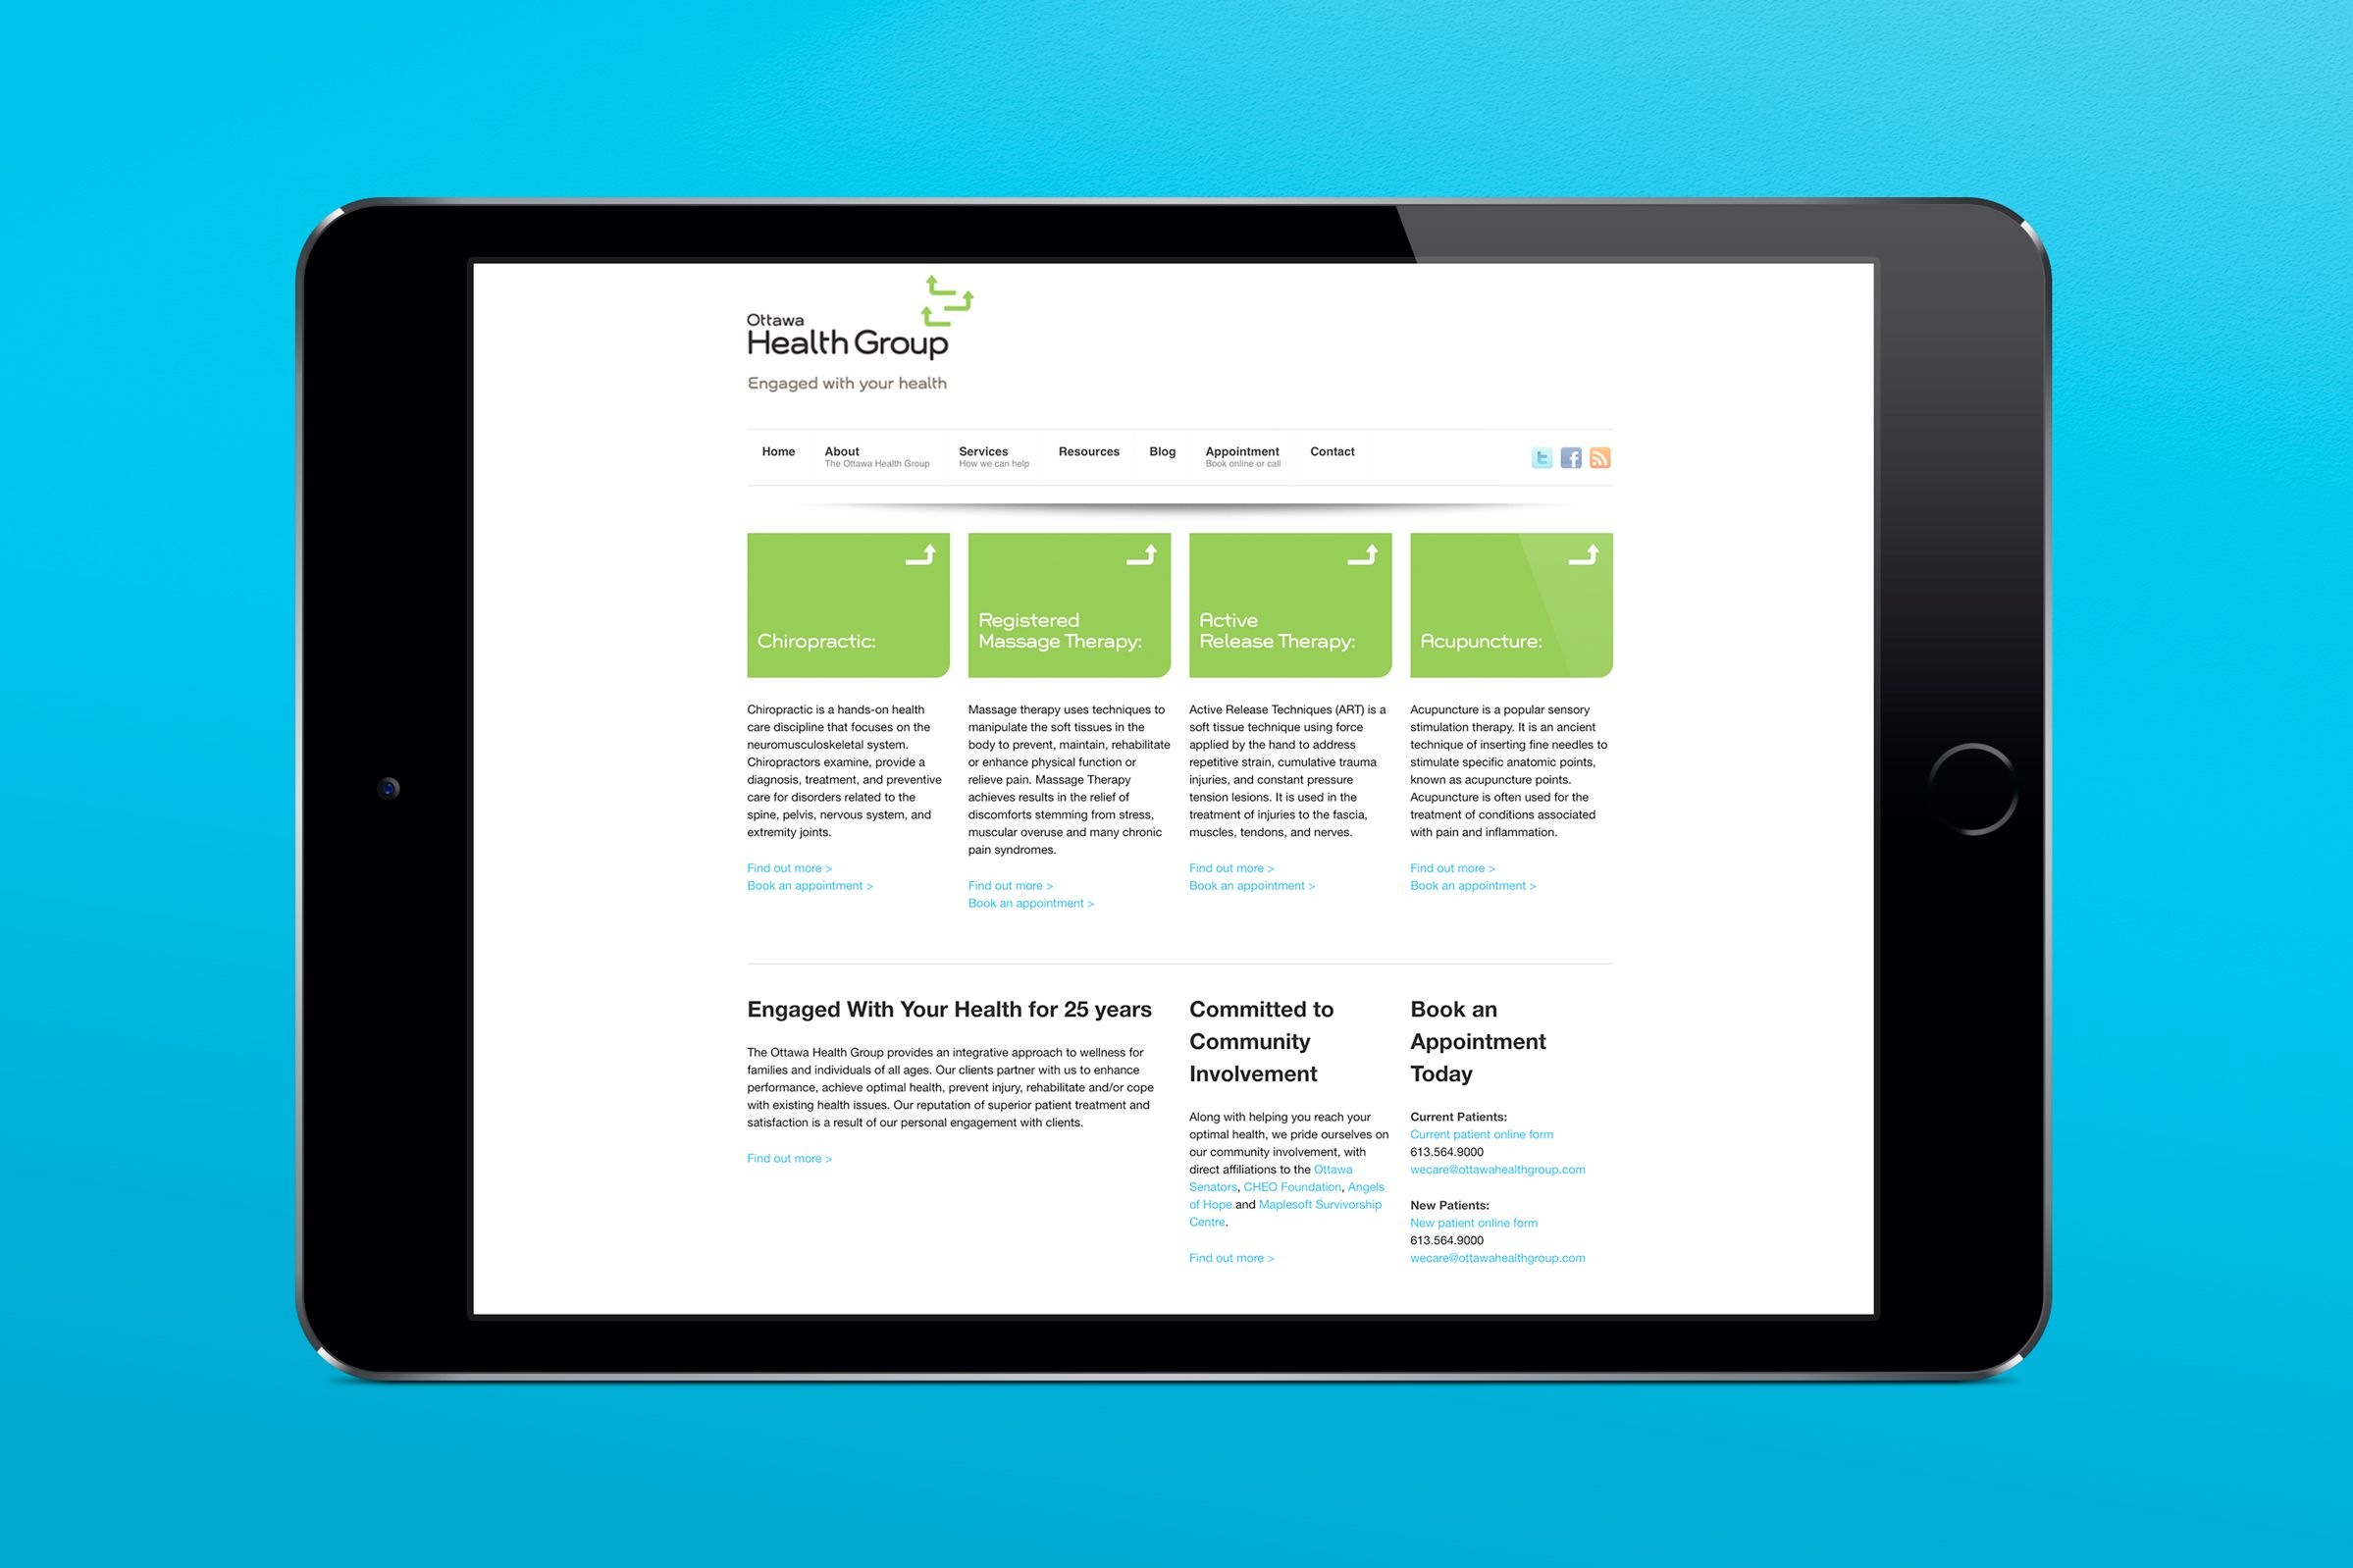 Website for Ottawa Health Group, a health care provider by Graphic Designer idApostle